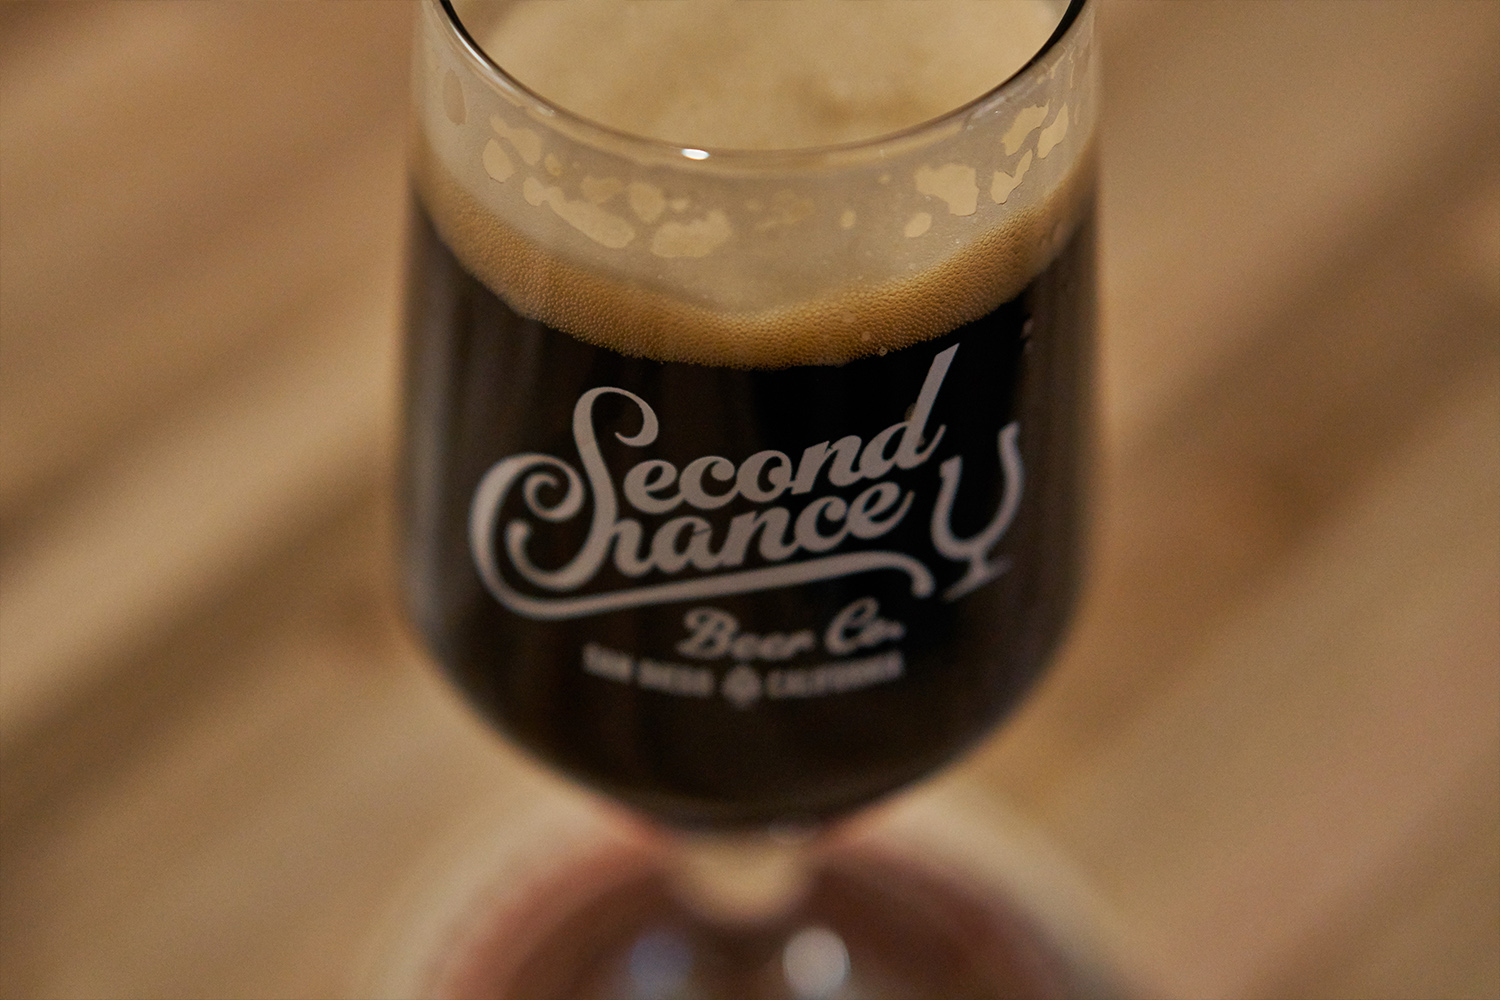 Second-Chance-Beer-Company-NorthPark-stout